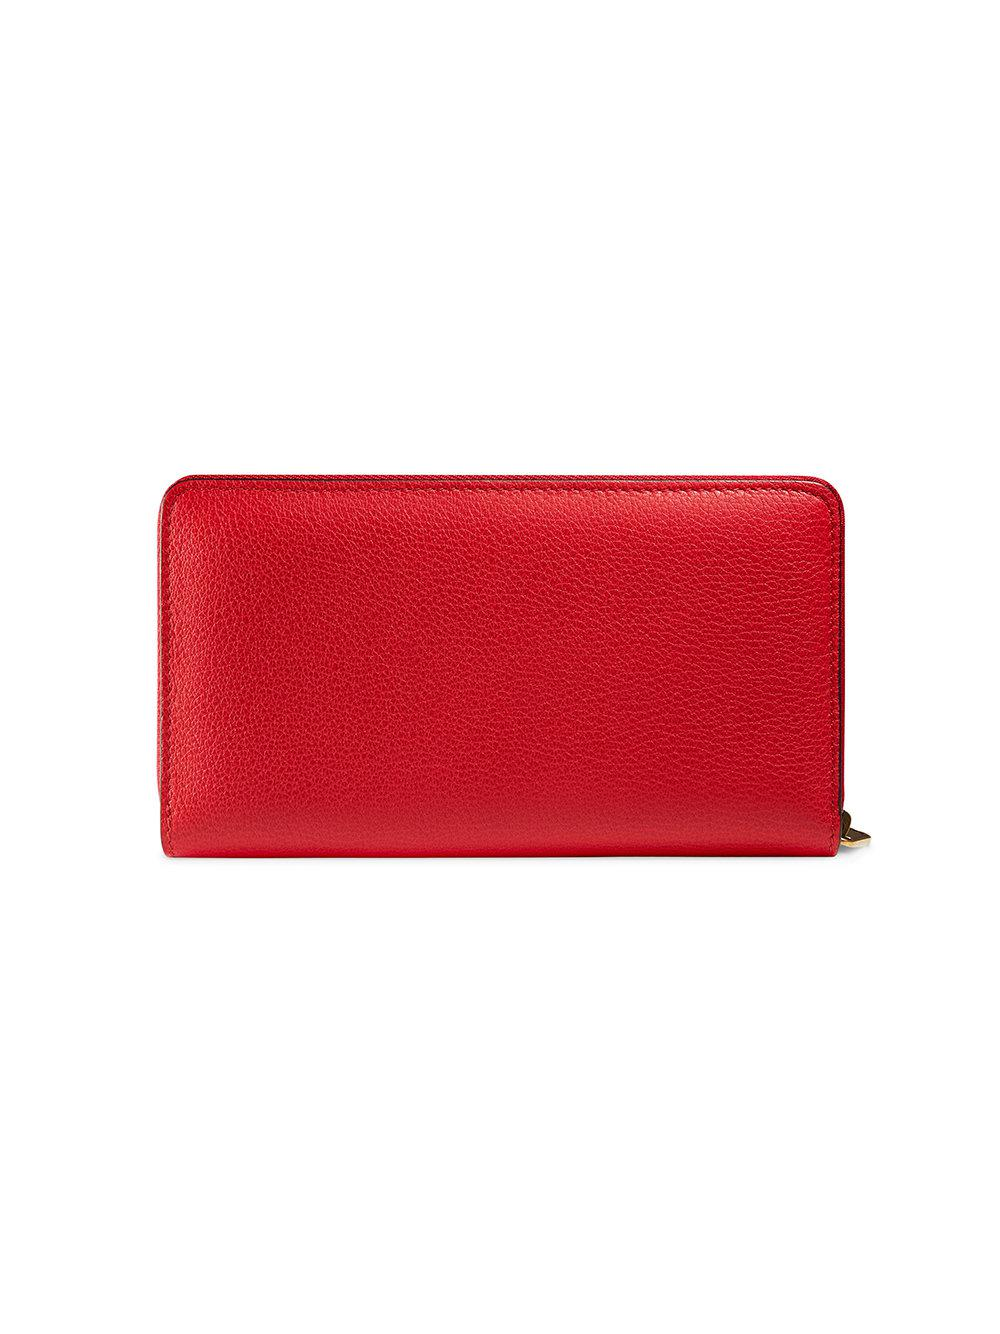 5b4089b0d7f Gucci Print Leather Zip Around Wallet in Red for Men - Save 13% - Lyst